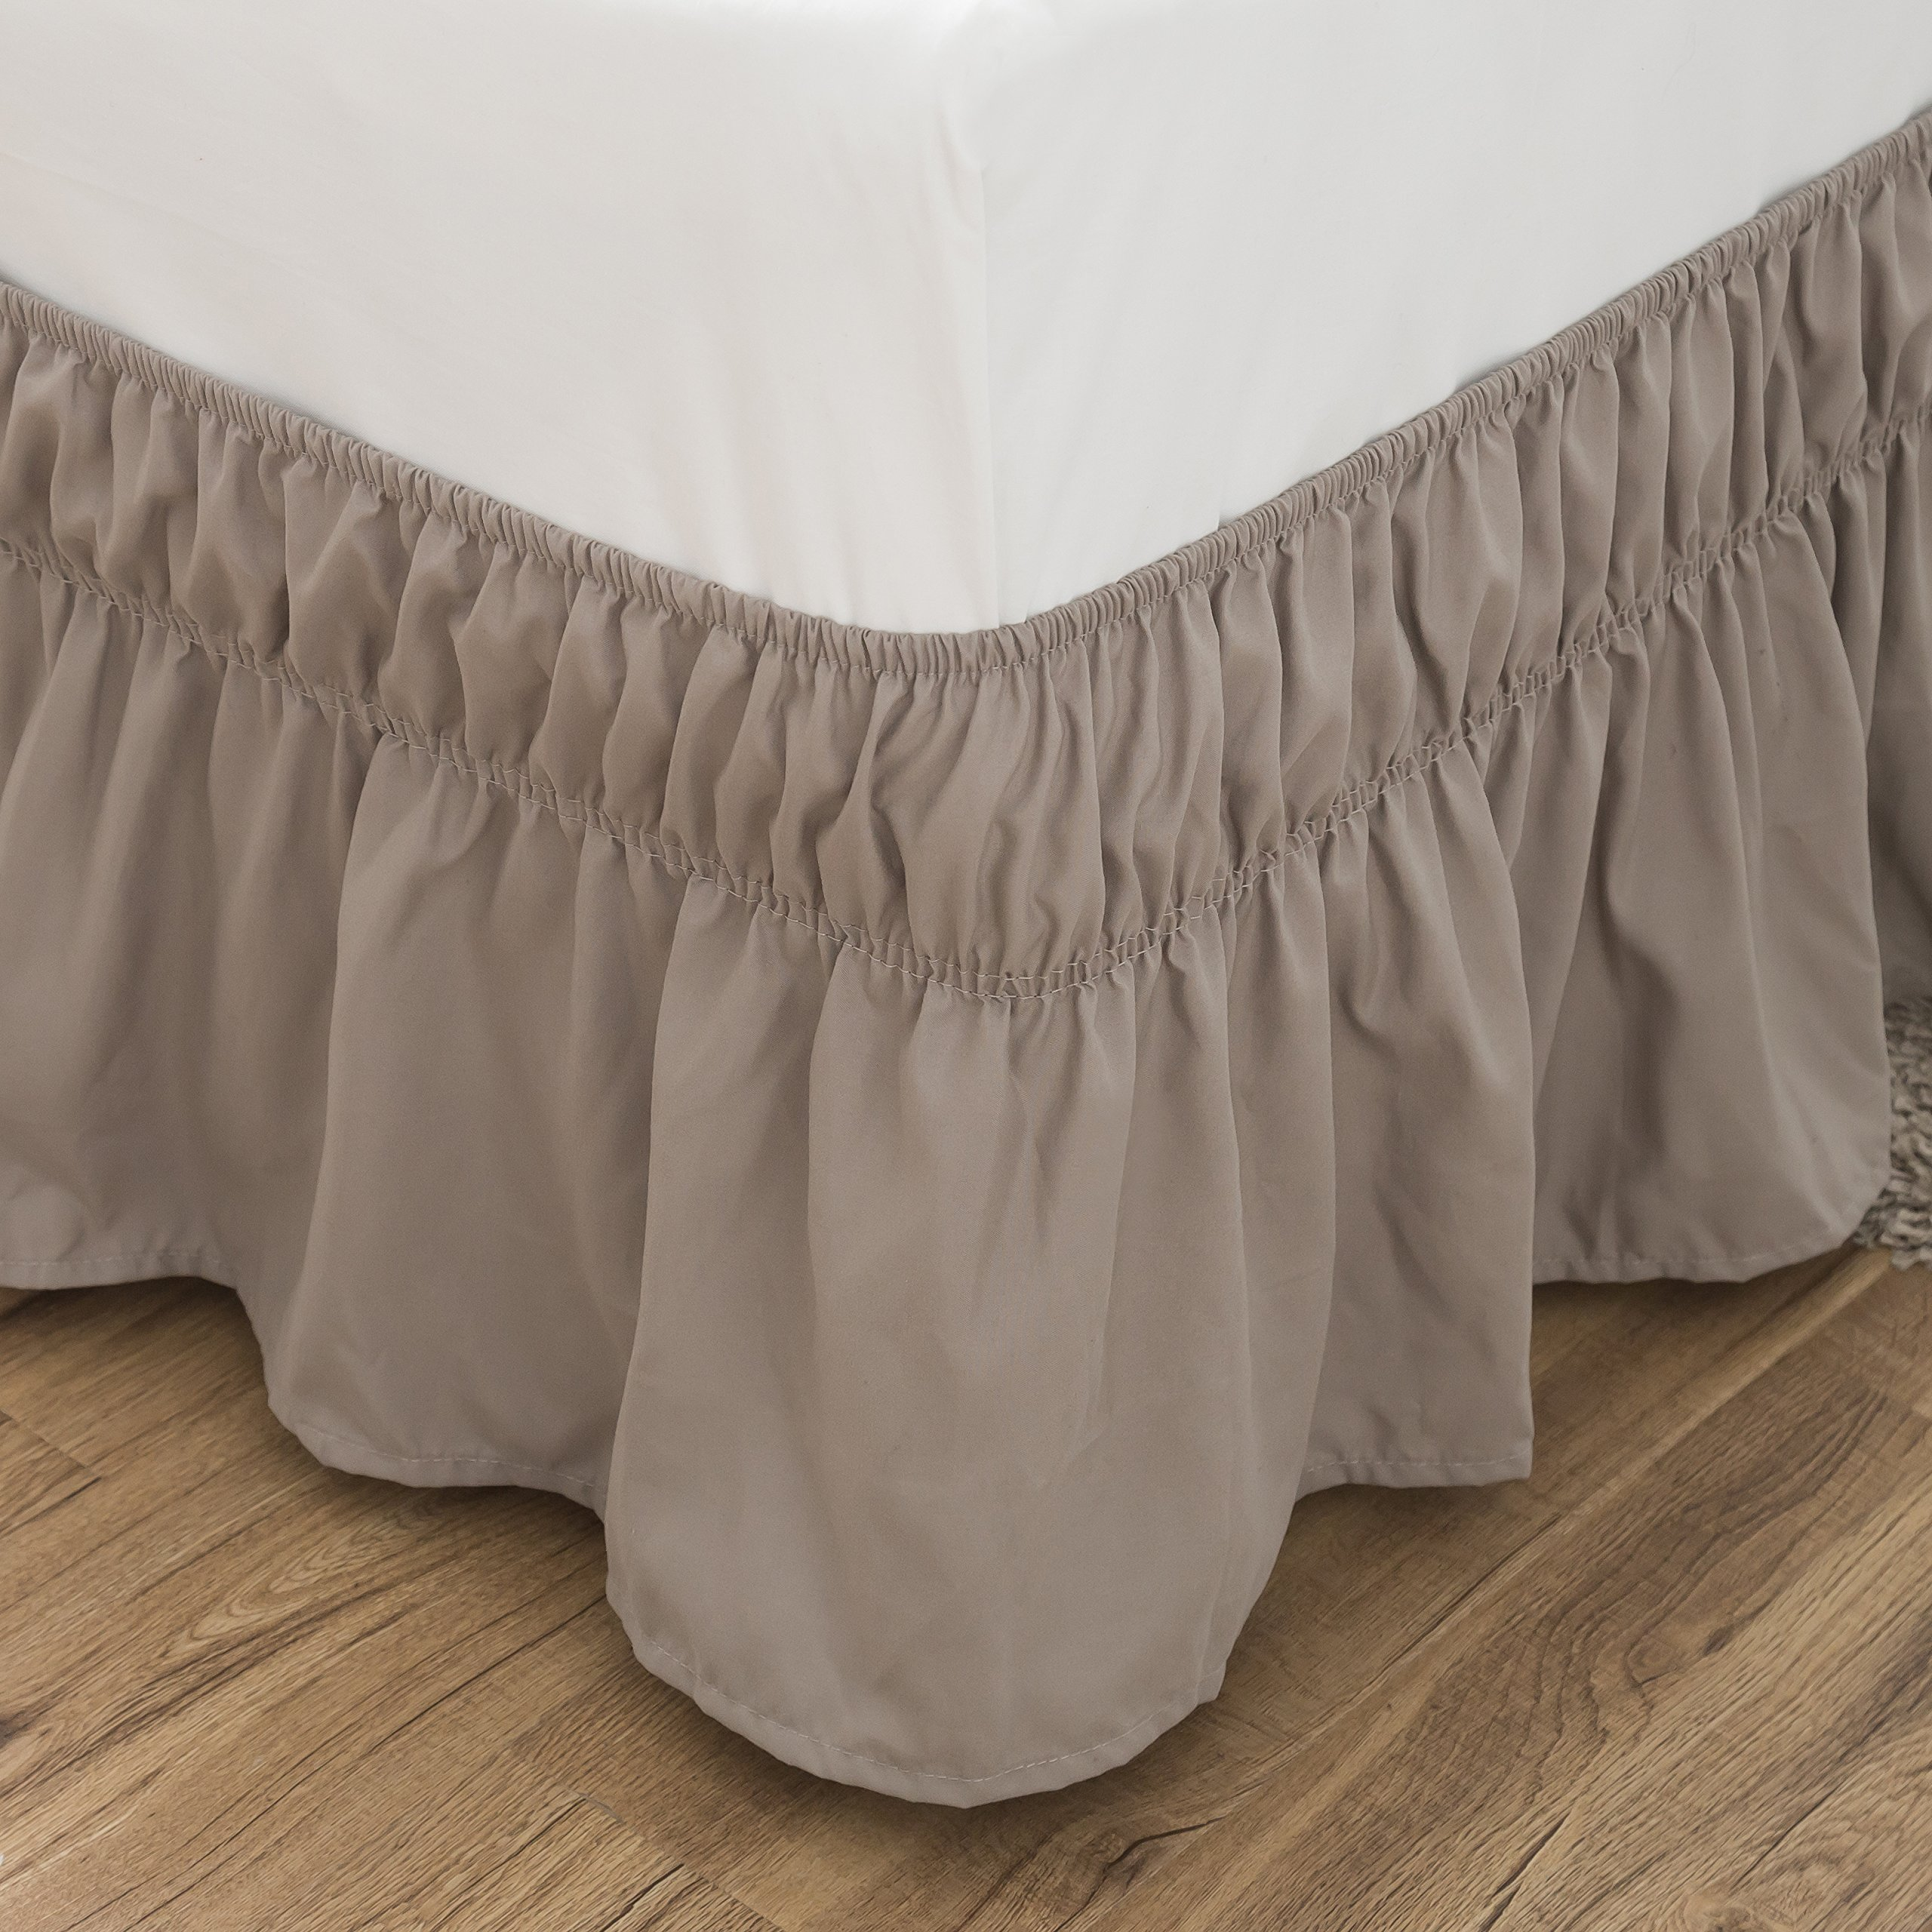 fdacf00179 Get Quotations · Bed Skirt-14 Inch Drop Dust Ruffle Three Fabric Sides Wrap  Around Ruffled (Queen